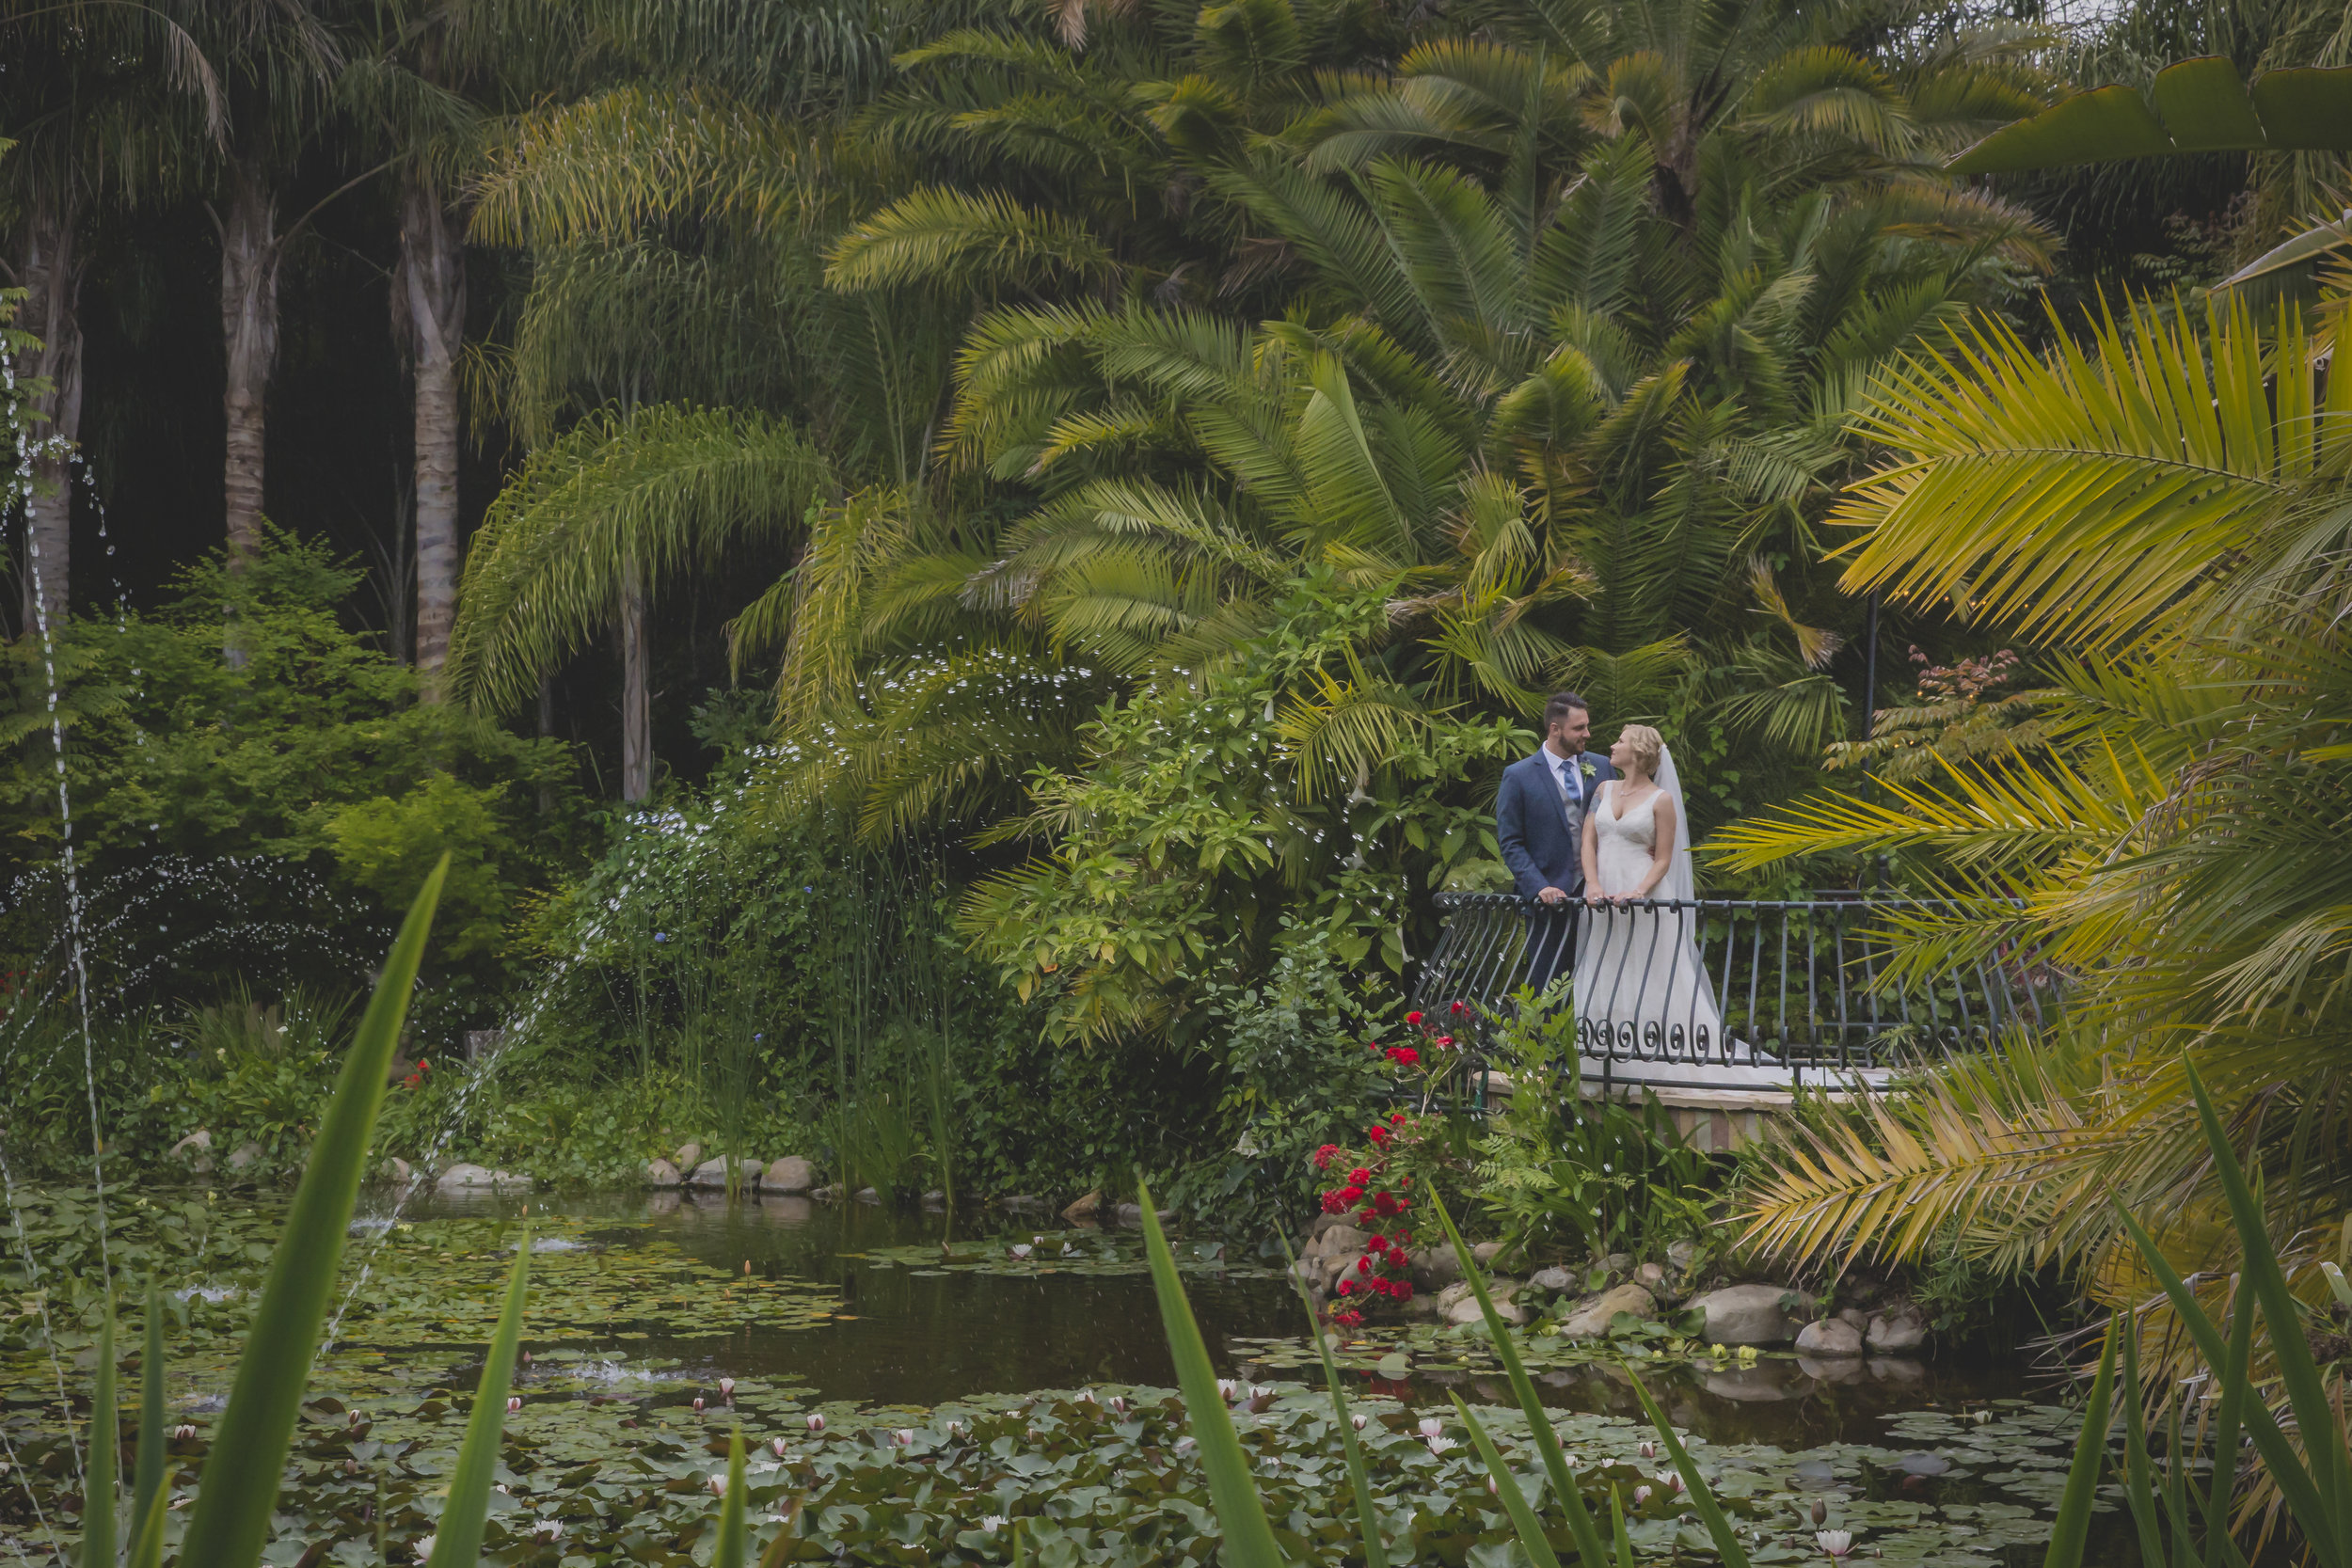 Wedding photography - Edens Gardens, Moorpark California Wedding Venue - Bride and groom facing each other overlooking a pond